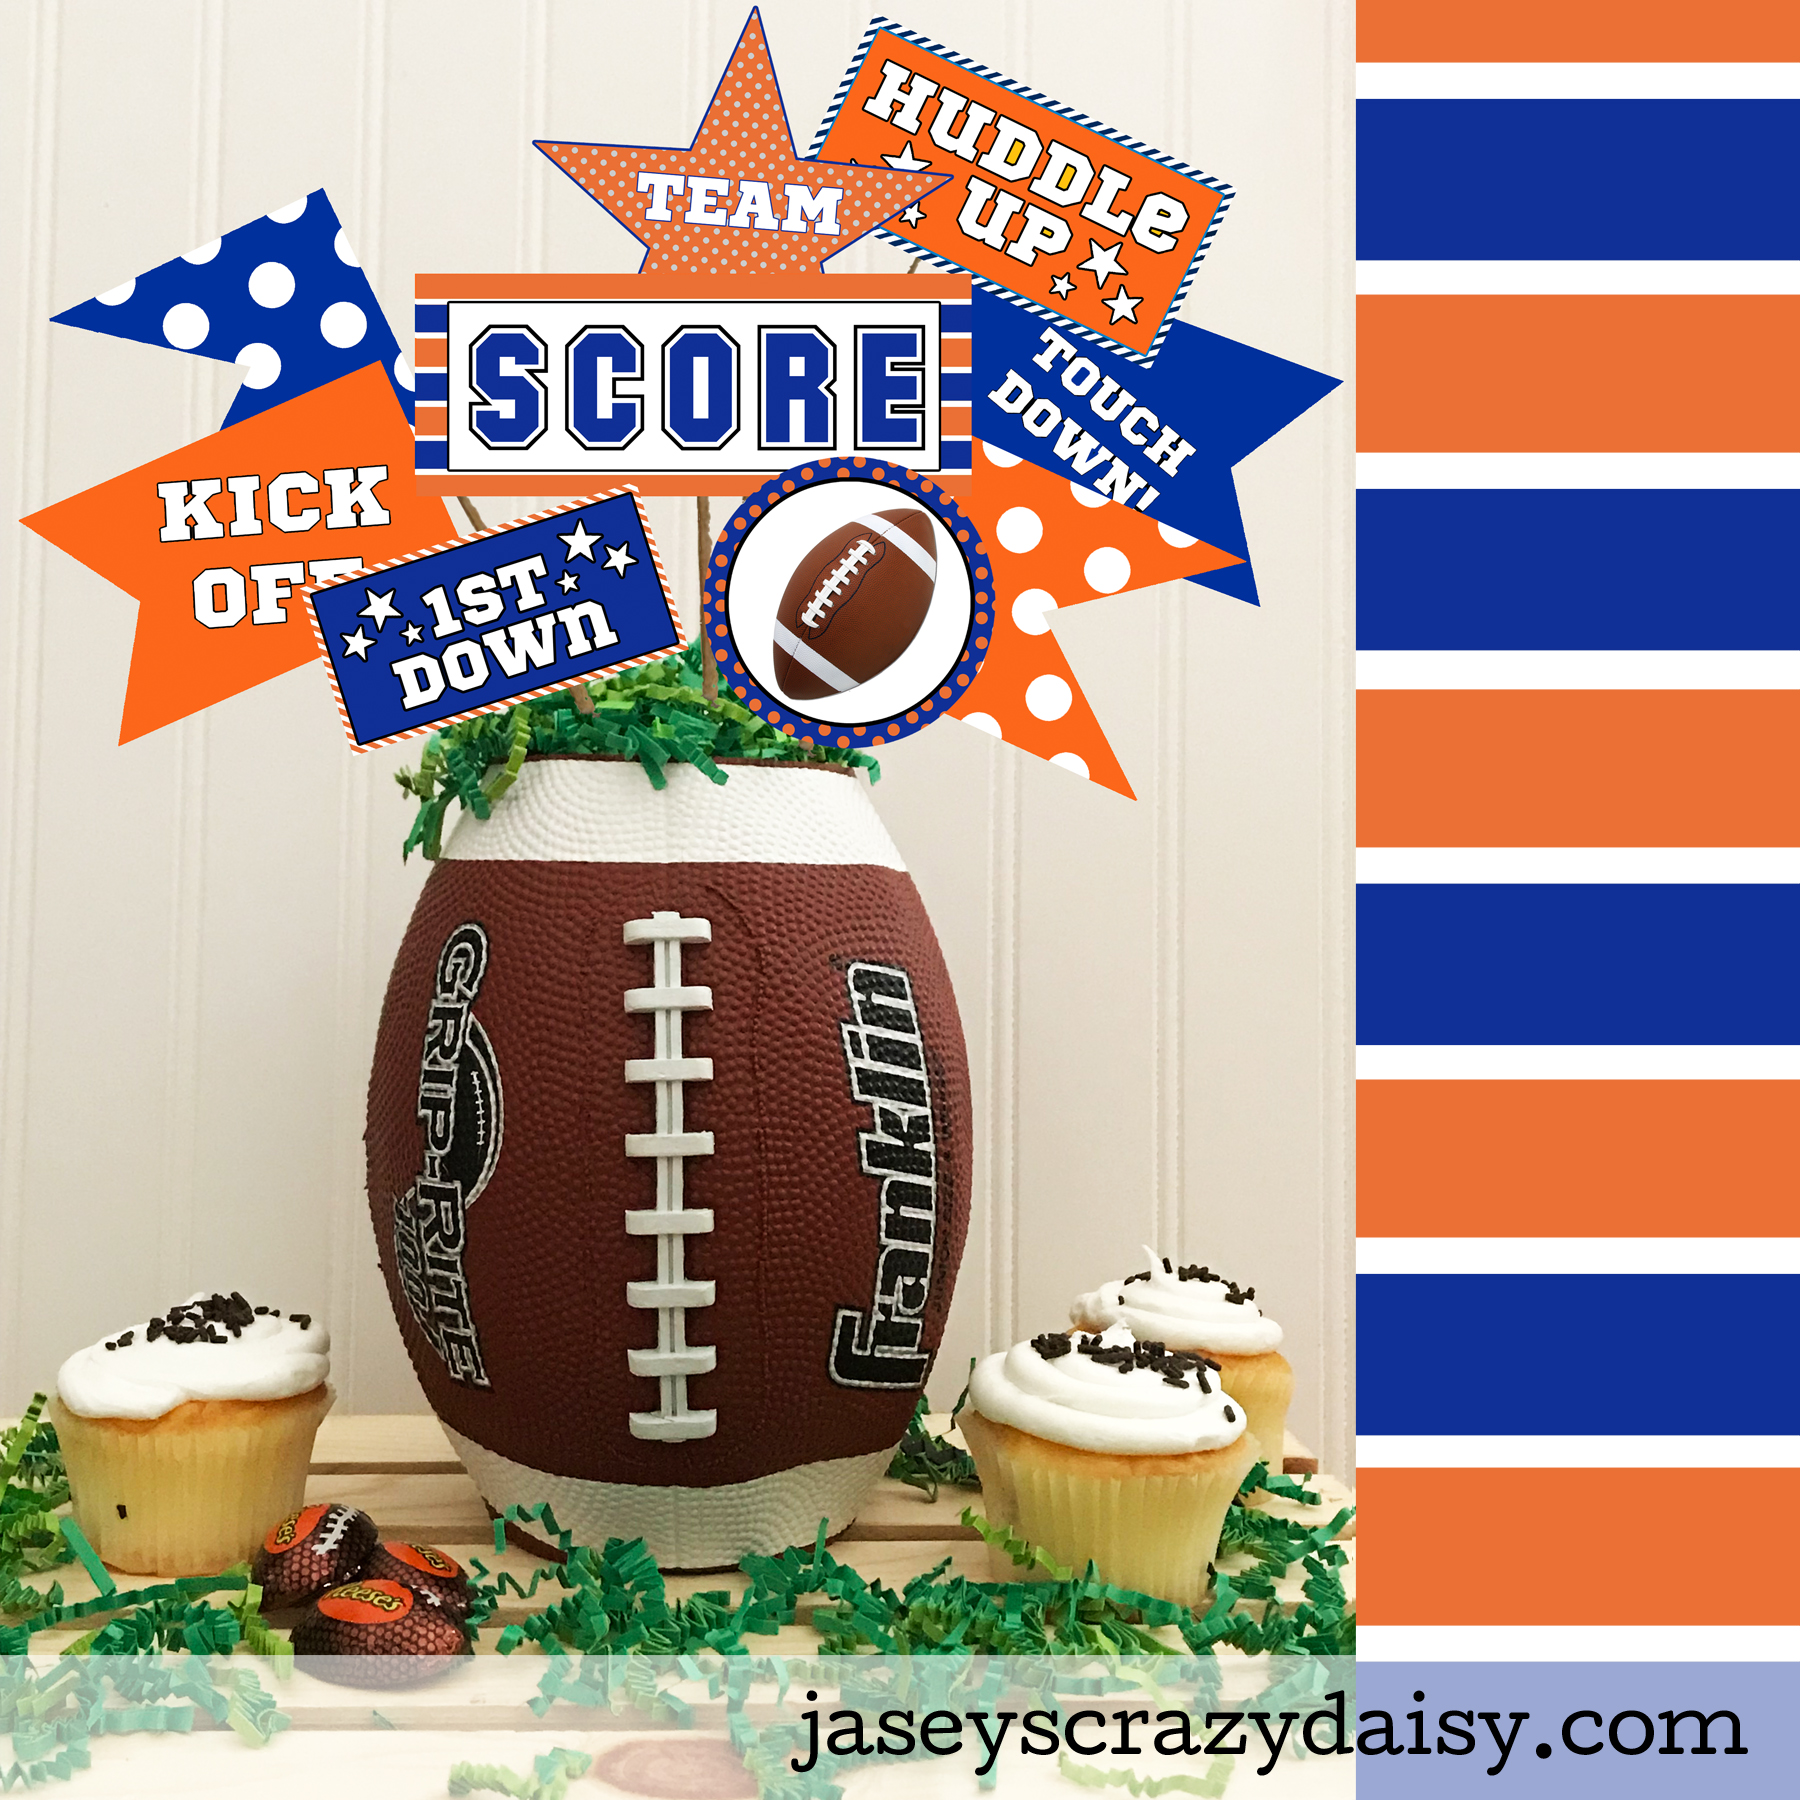 image regarding Printable Pennants titled Do it yourself Blue and Orange Printable Soccer Pennants - Instantaneous Obtain - Jaseys Nuts Daisy